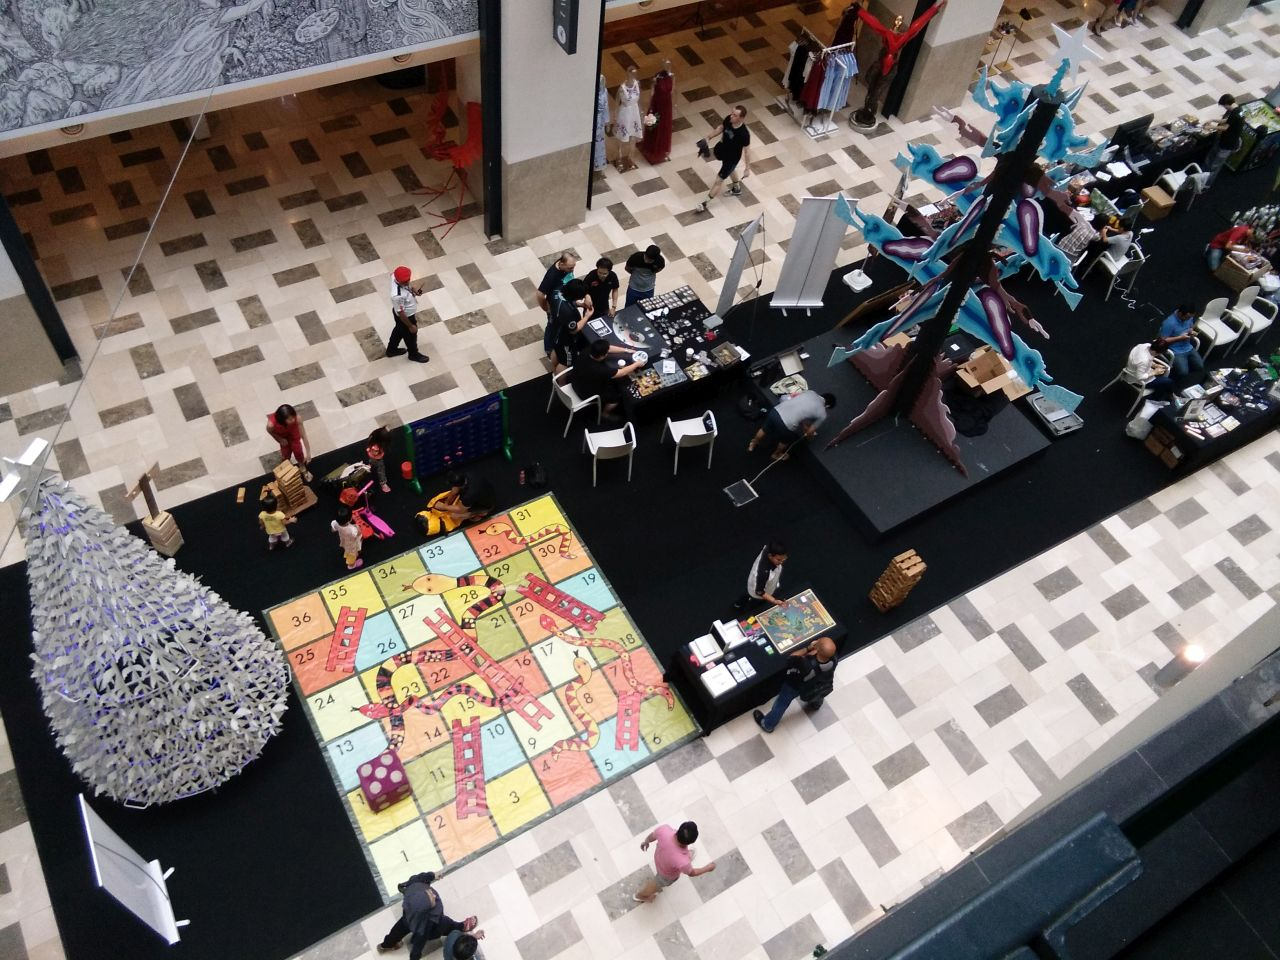 KotakCon 2016, RPG, boardgames, Role Over Play Dead